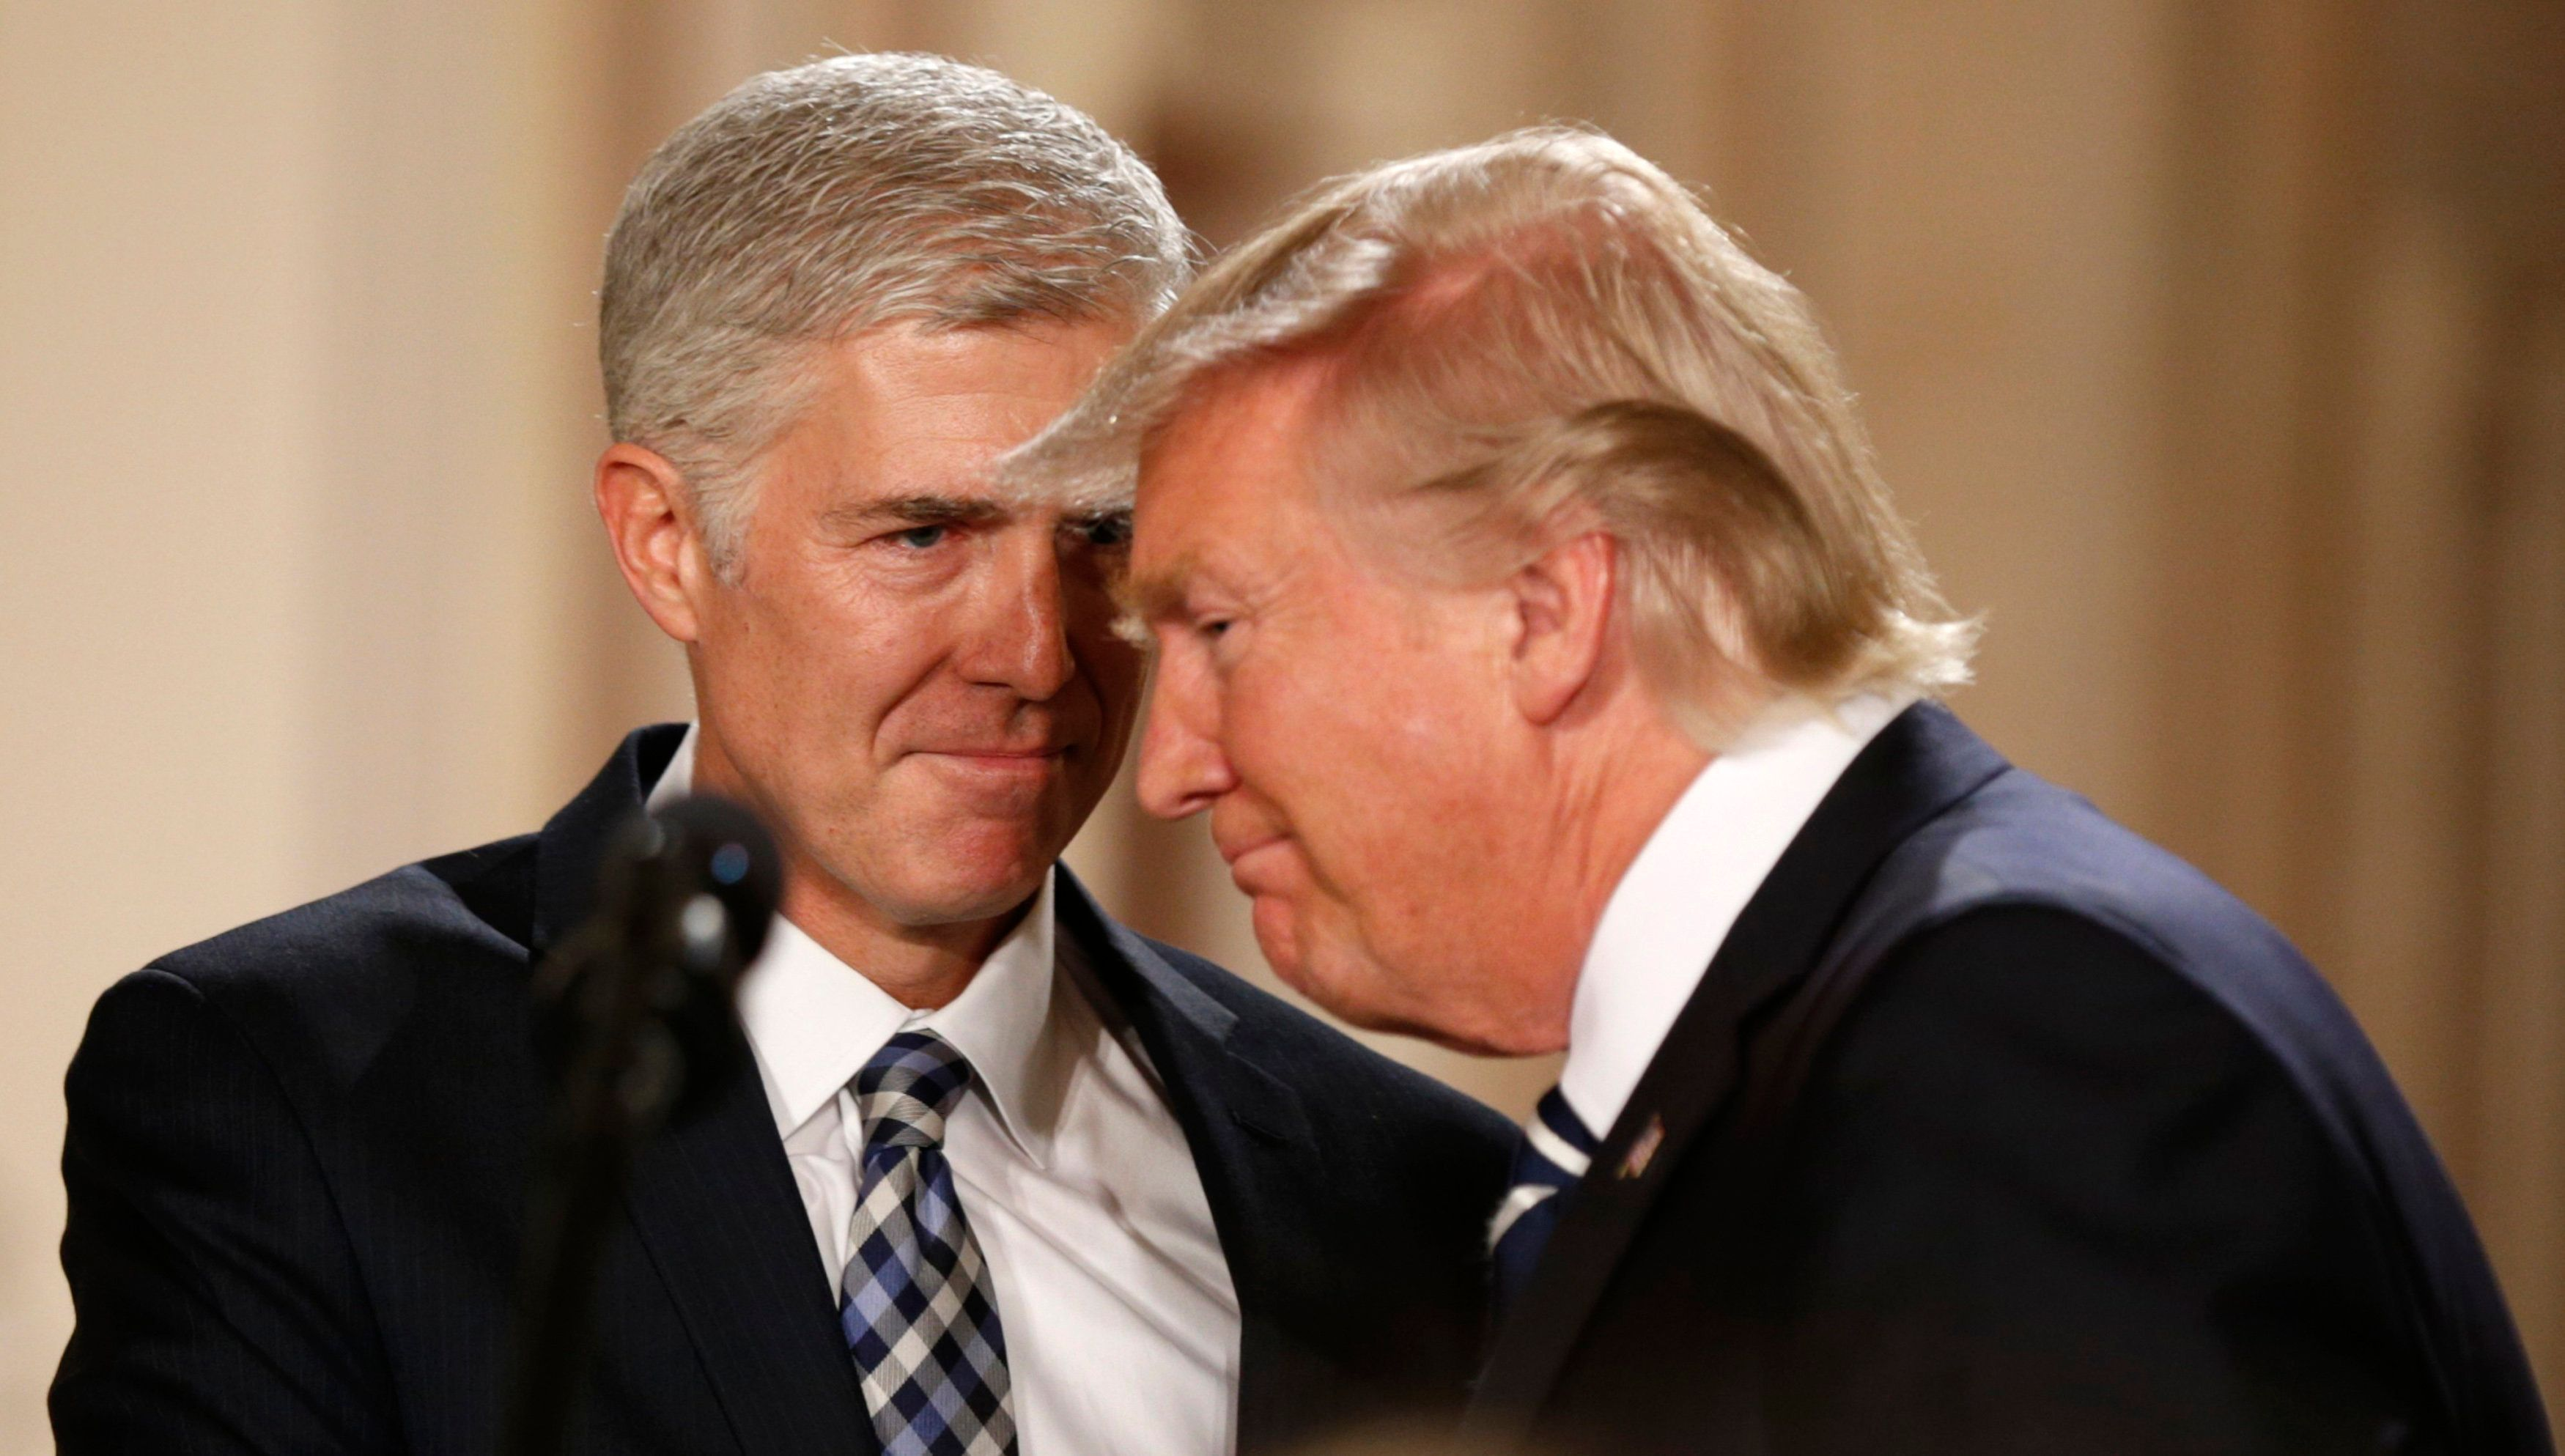 President Donald Trump announced his nomination of Judge Neil Gorsuch to the Supreme Court on Tuesday.